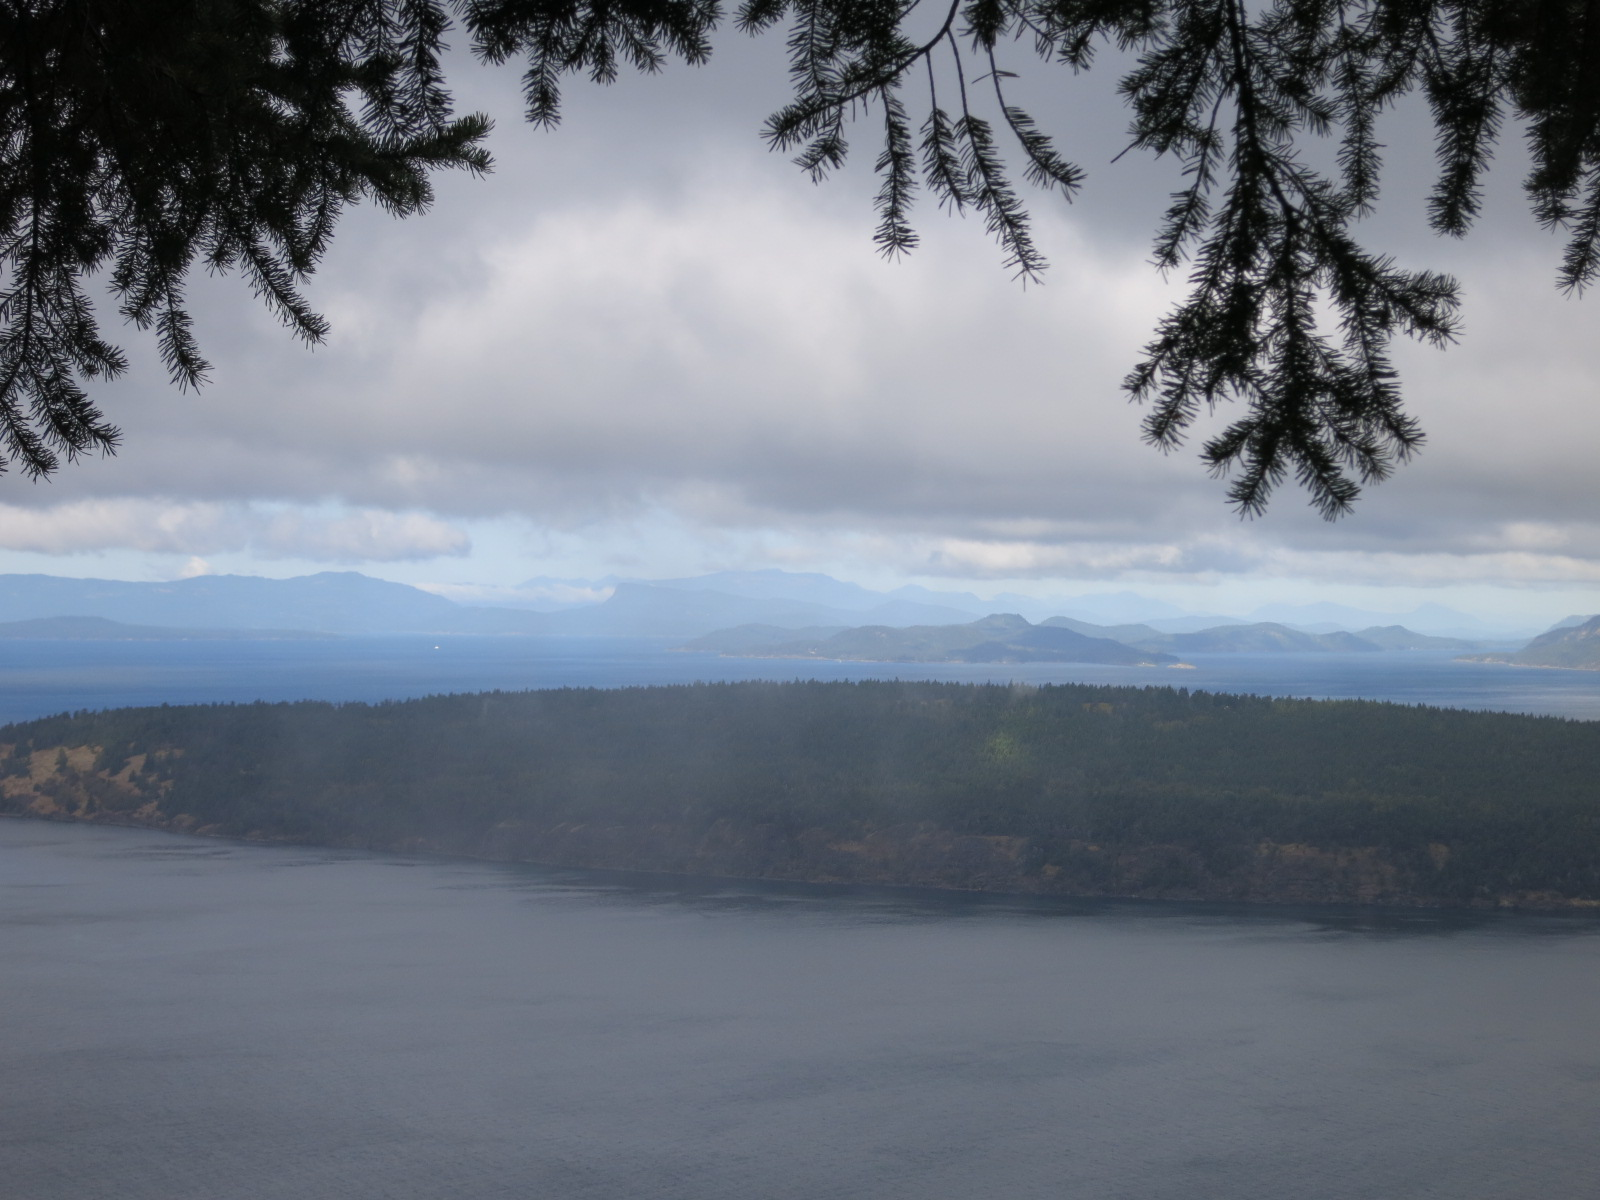 The view from Waldron Lookout on Turtleback Mountain Preserve